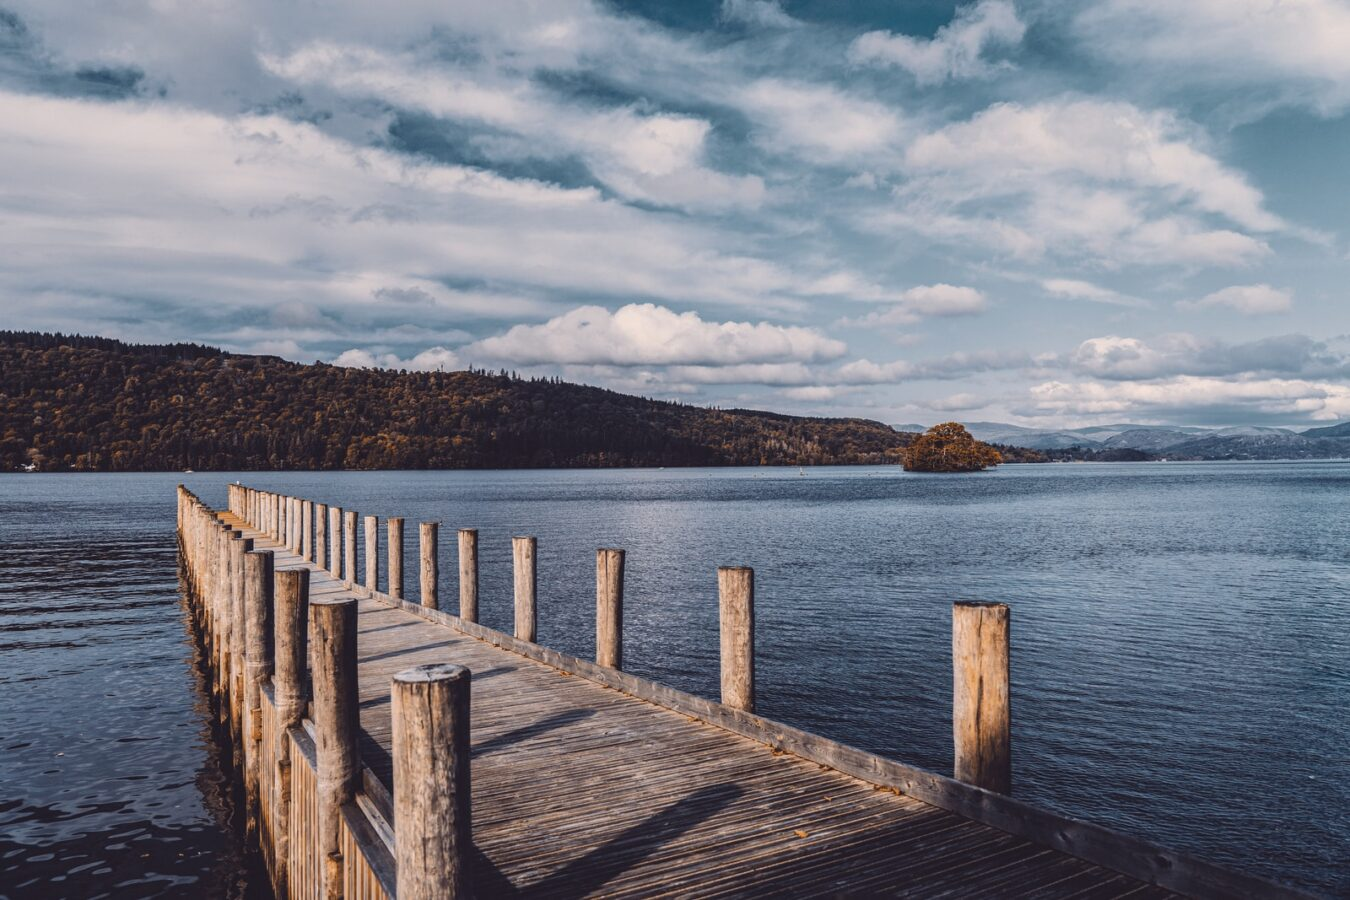 brown wooden dock on blue sea under white clouds during daytime